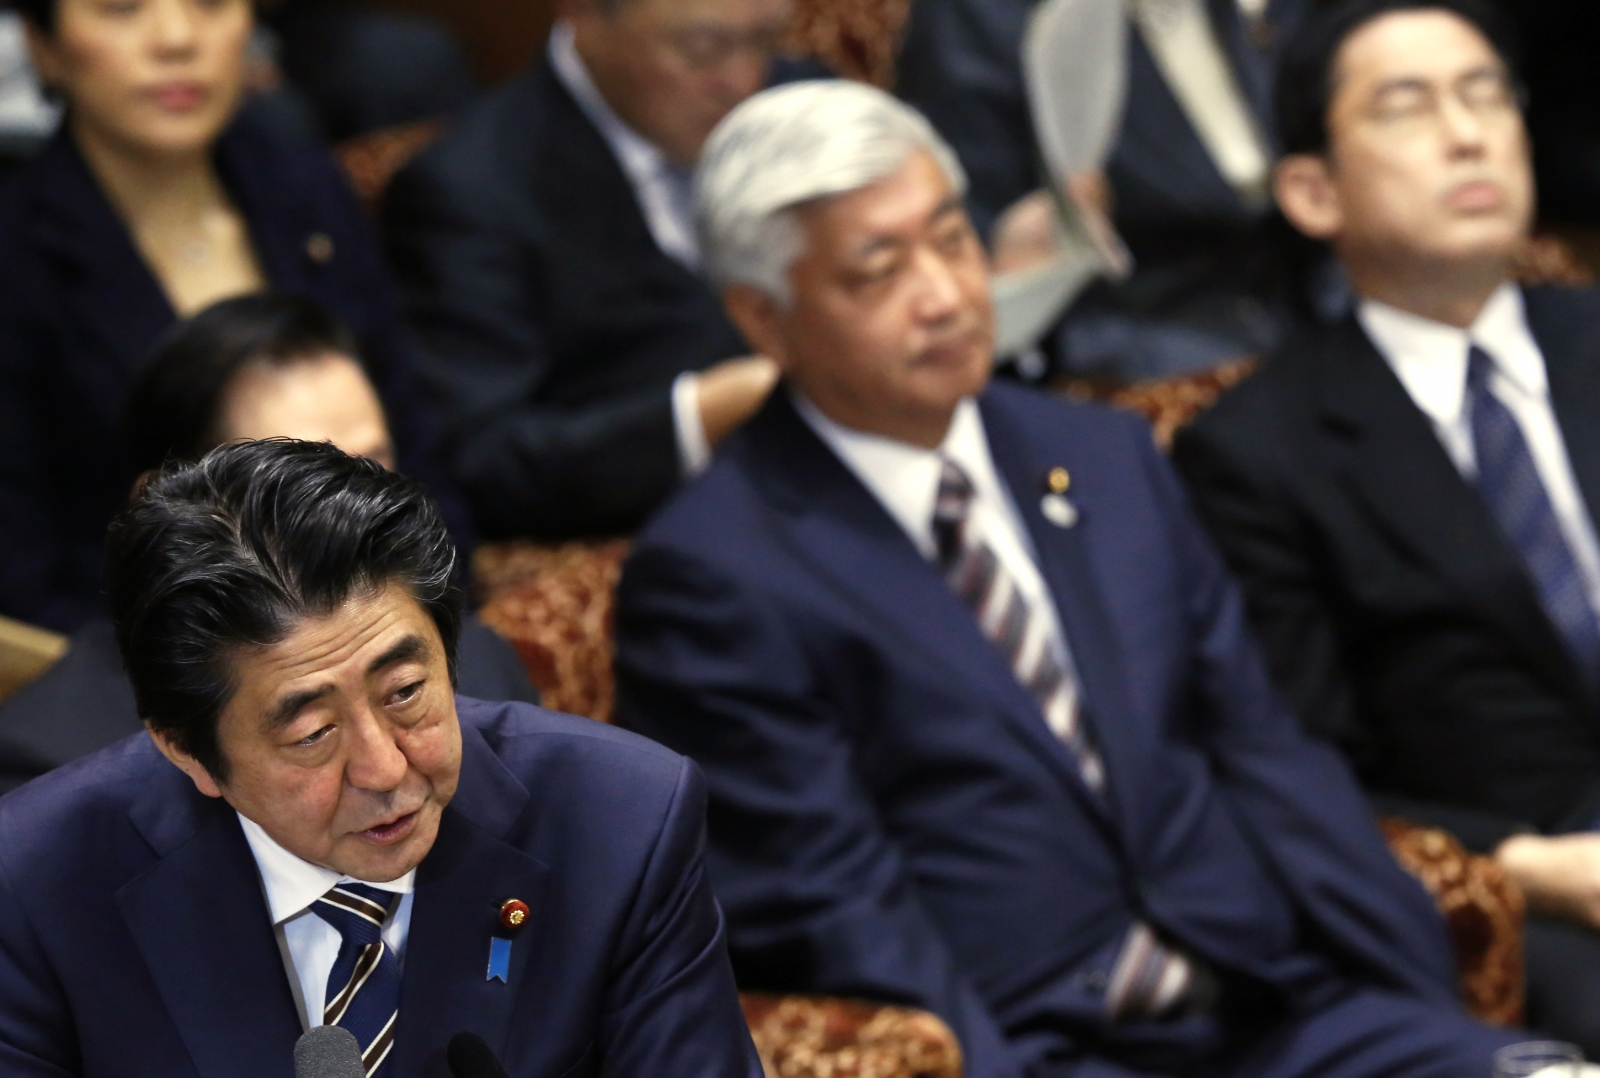 Japan proposes changes in military policies